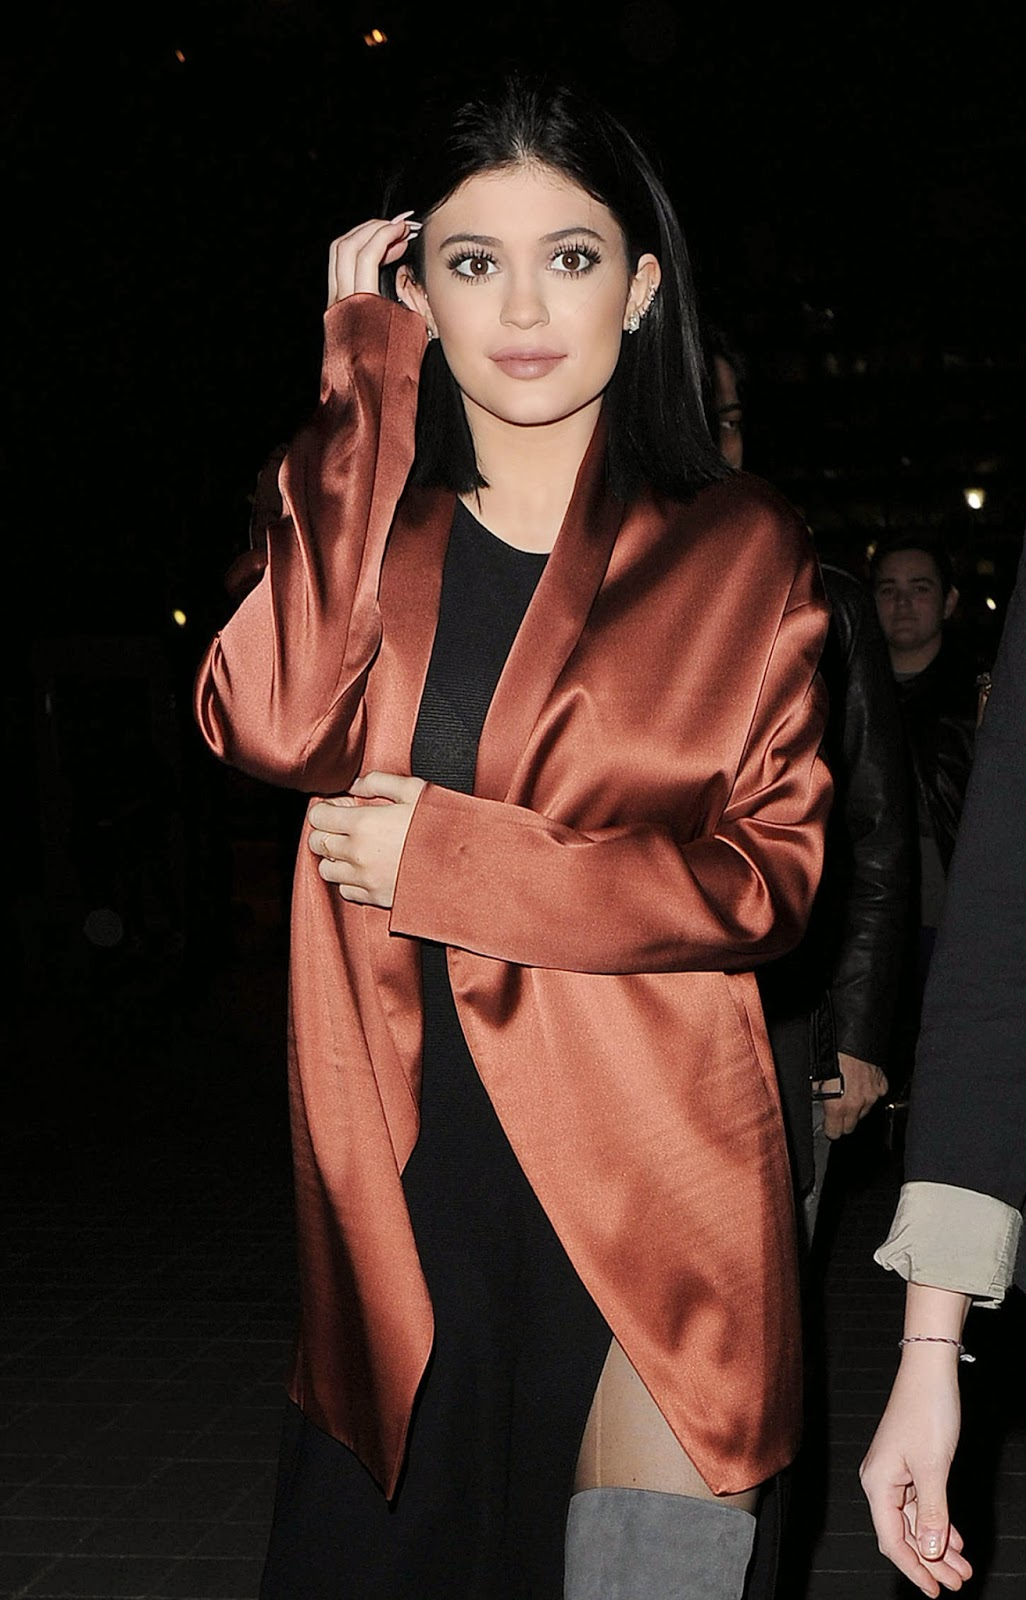 Kylie Jenner flashes cleavage in a sheer dress out and about in London